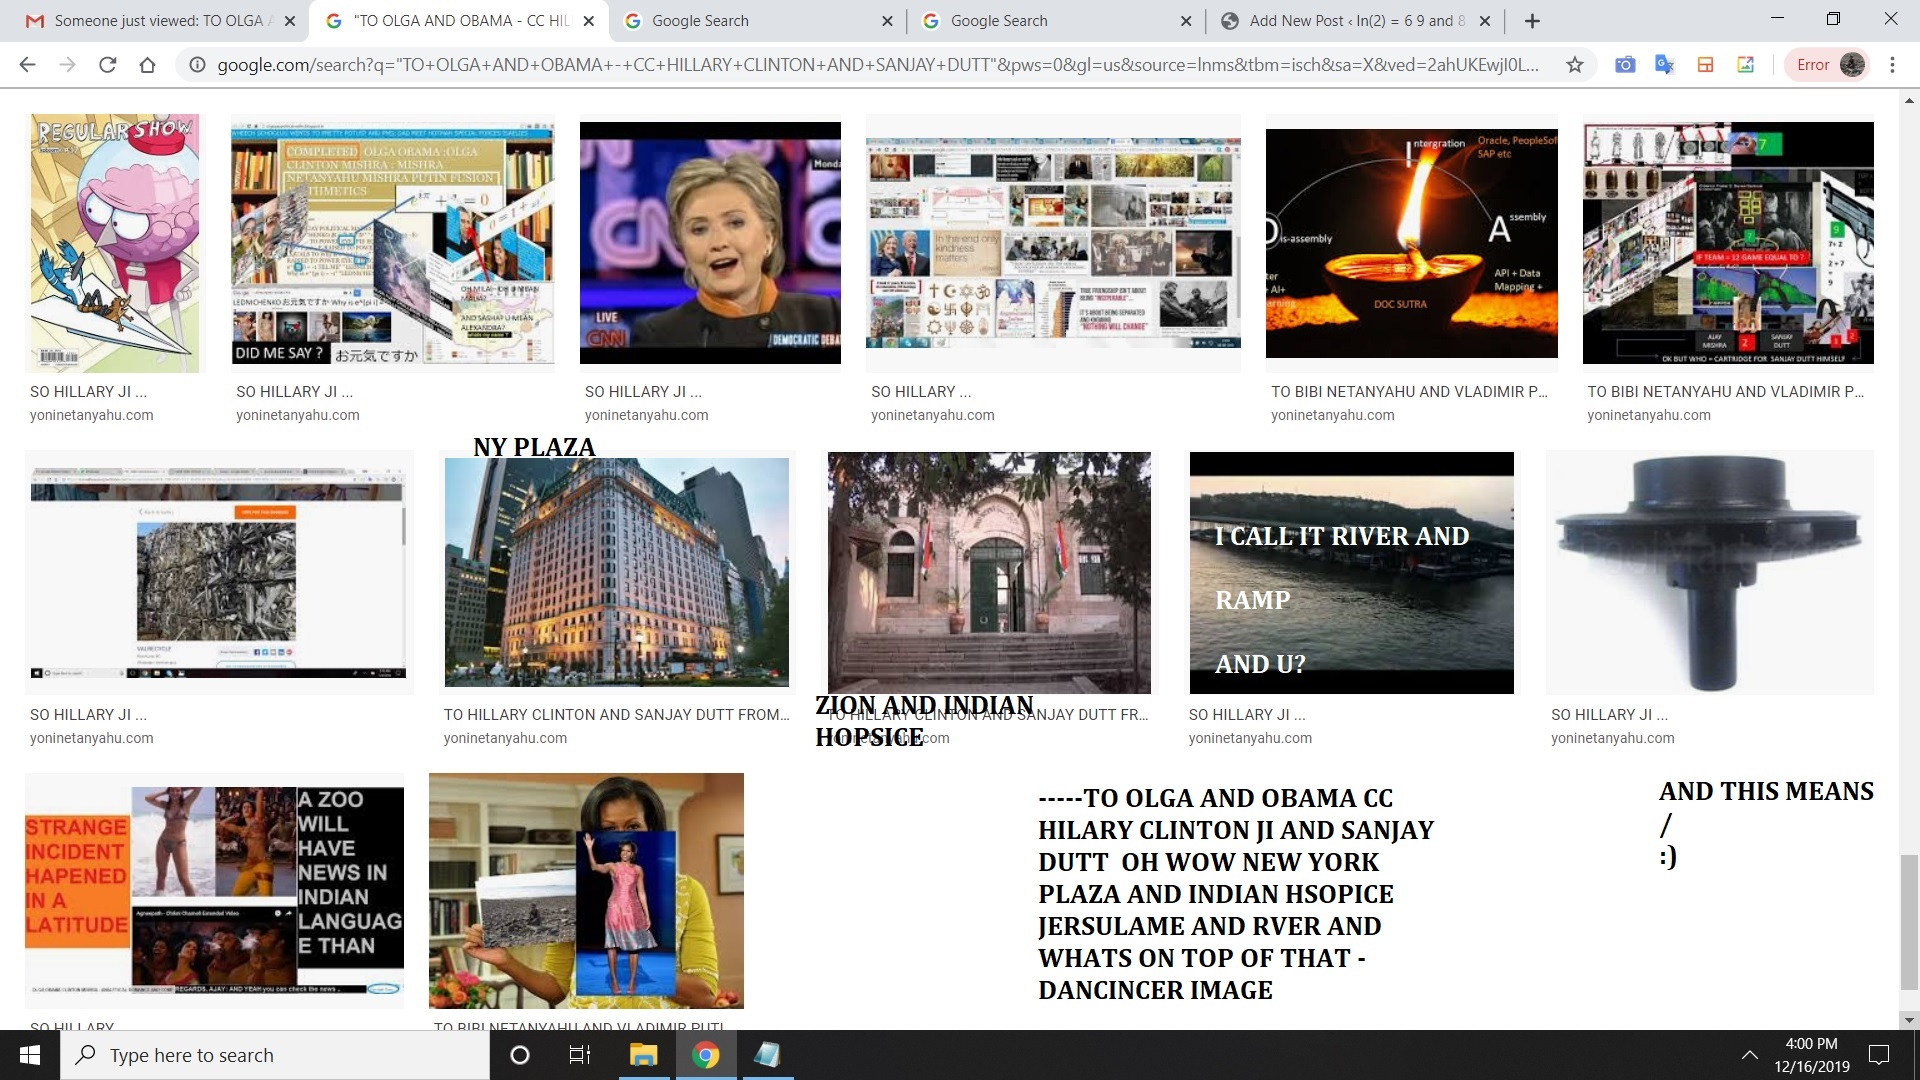 -----TO OLGA AND OBAMA CC HILARY CLINTON JI AND SANJAY DUTT OH WOW NEW YORK PLAZA AND INDIAN HSOPICE JERSULAME AND RVER AND WHATS ON TOP OF THAT - DANCINCER IMAGE